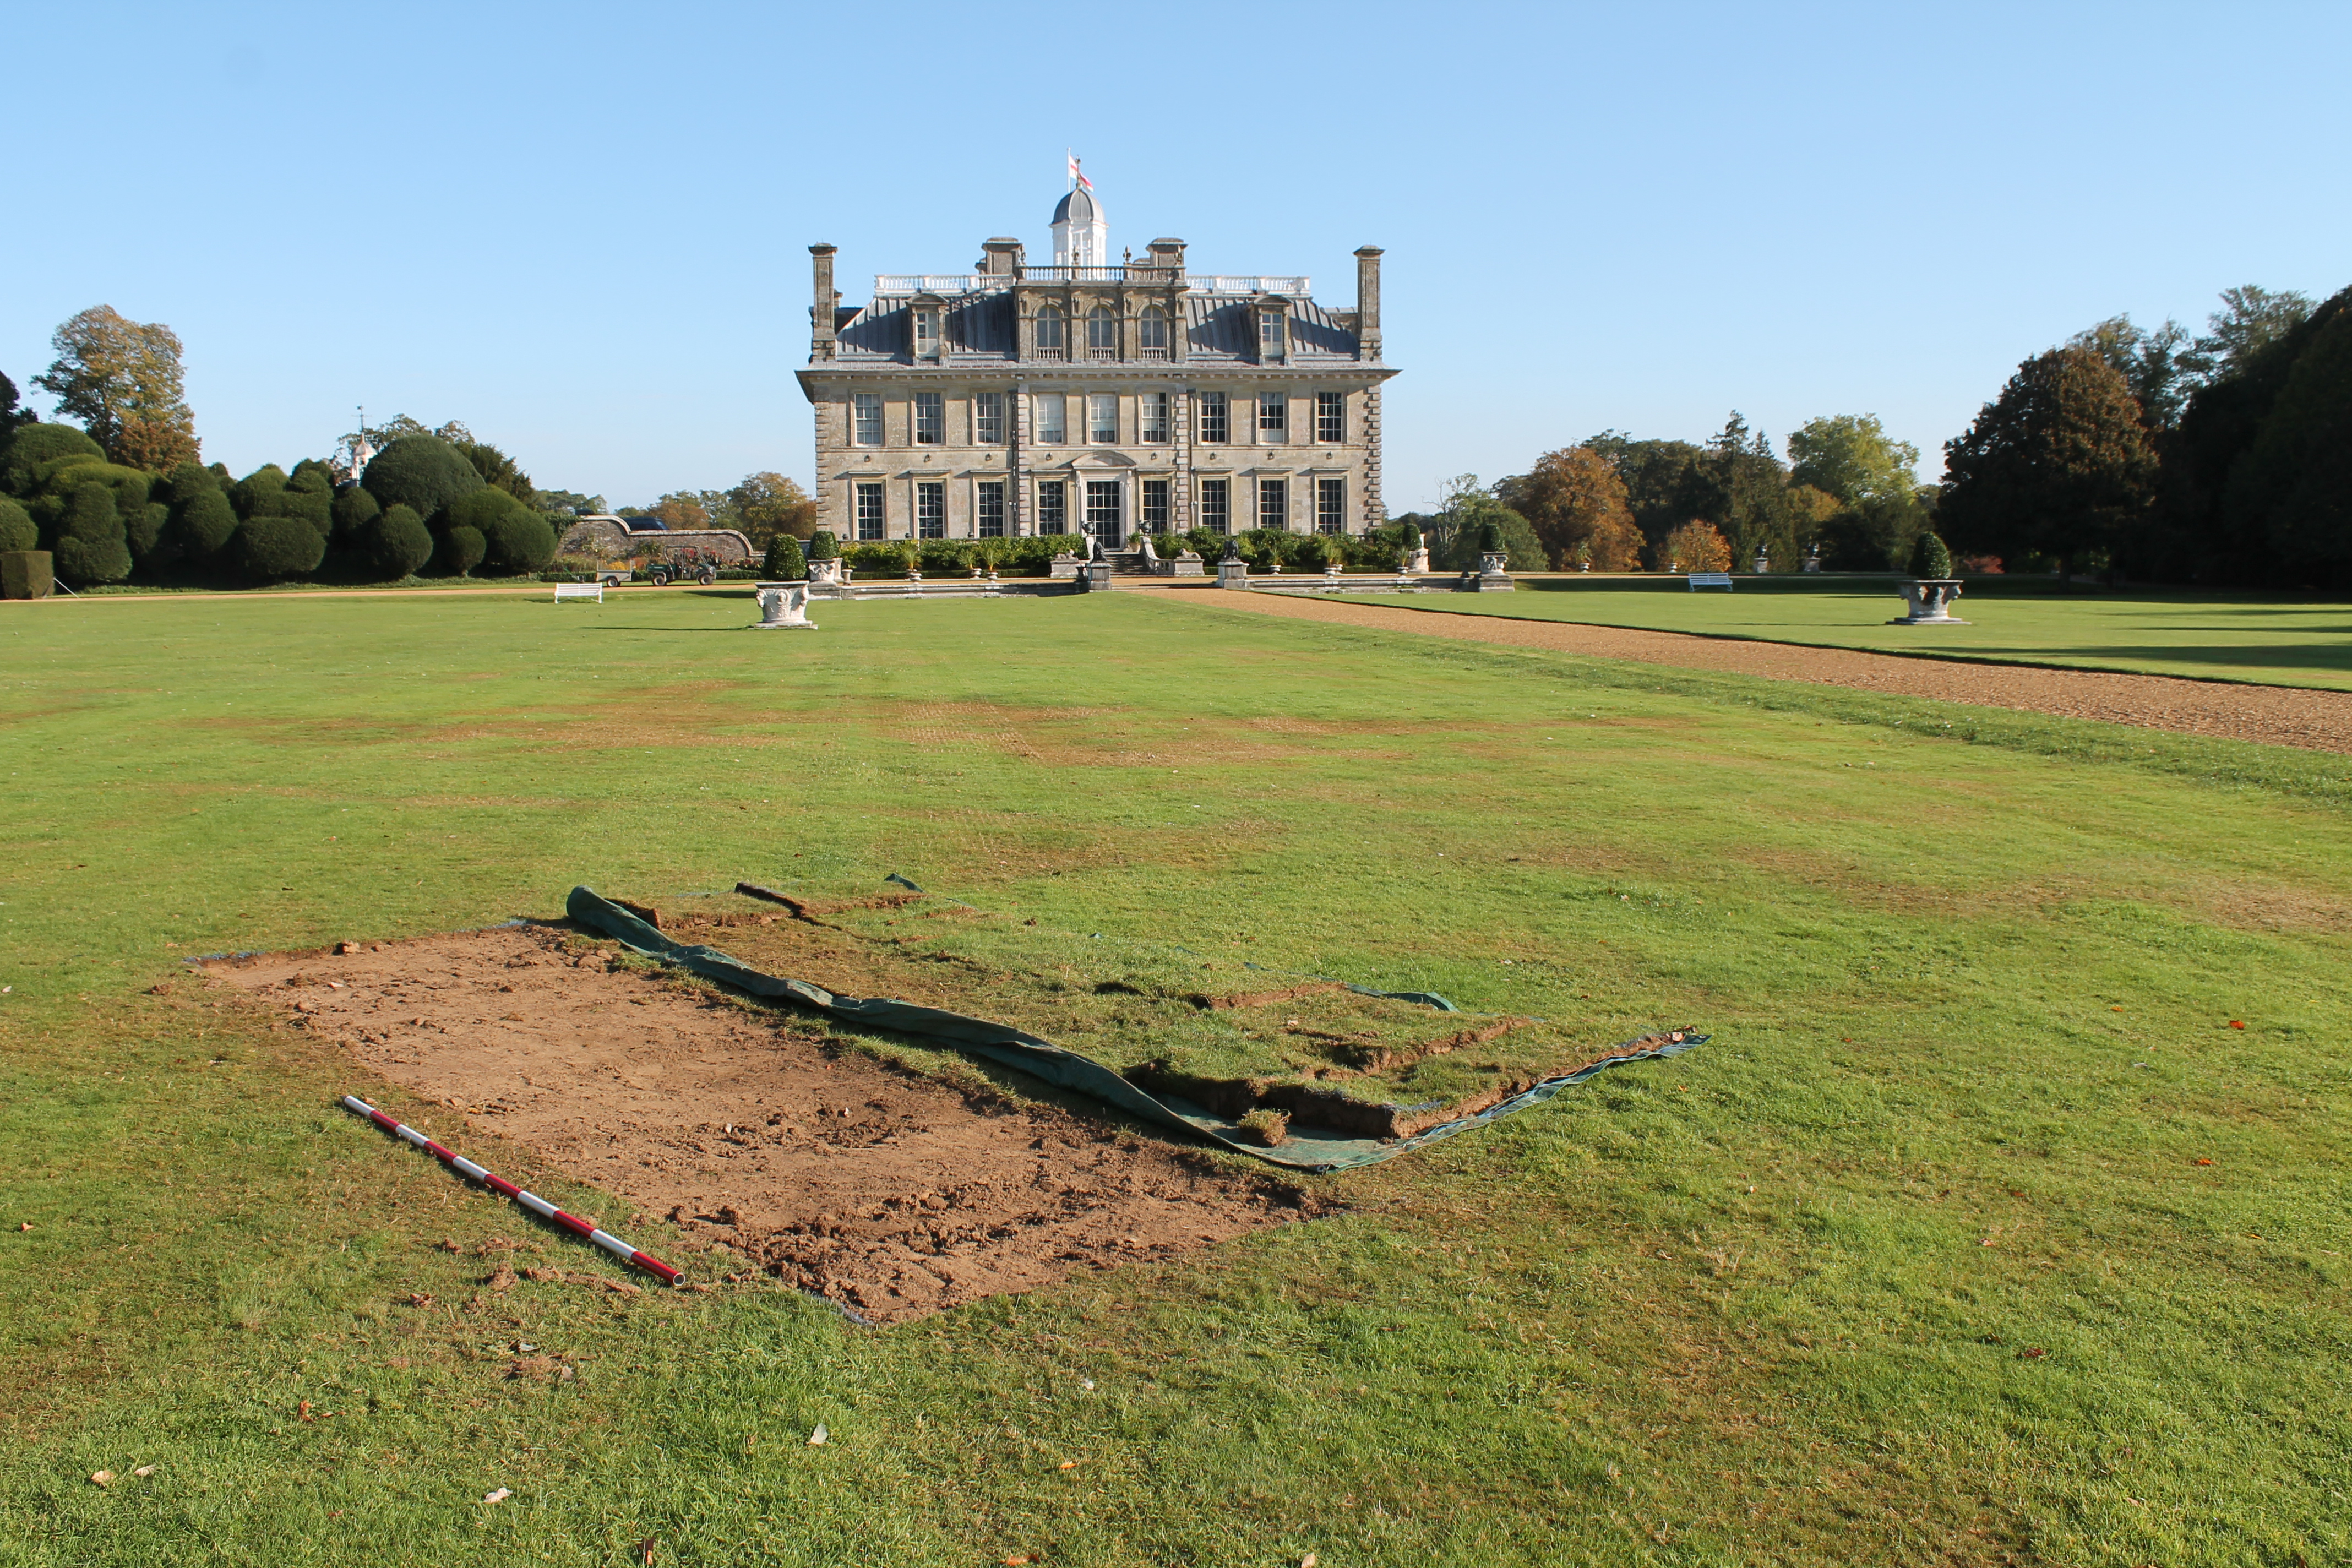 The trench early this morning carefully stripped of turf by the Kingston Lacy garden team